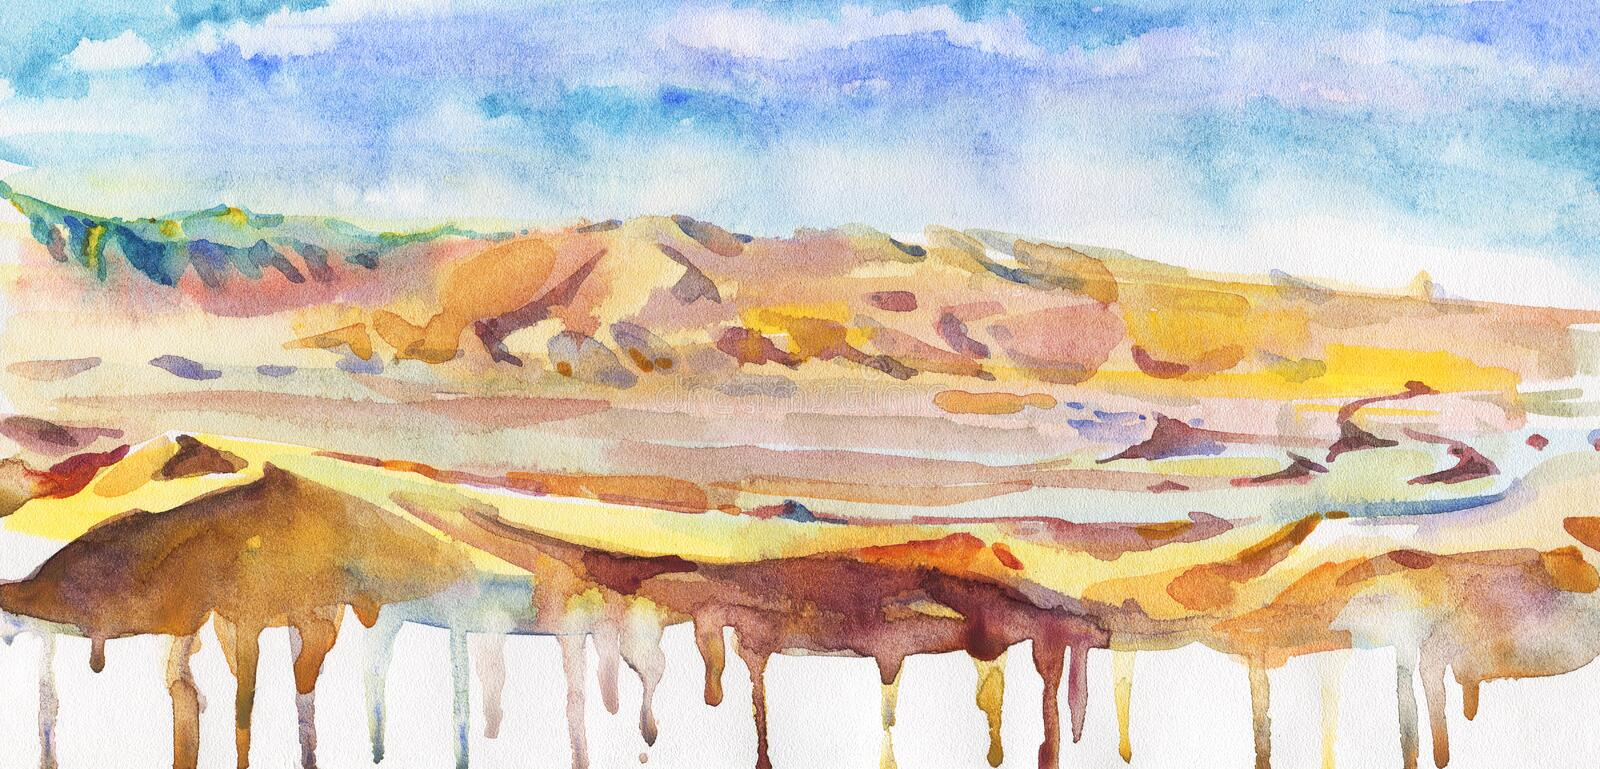 Hand drawn abstract background. Watercolor desert and sky illustration vector illustration